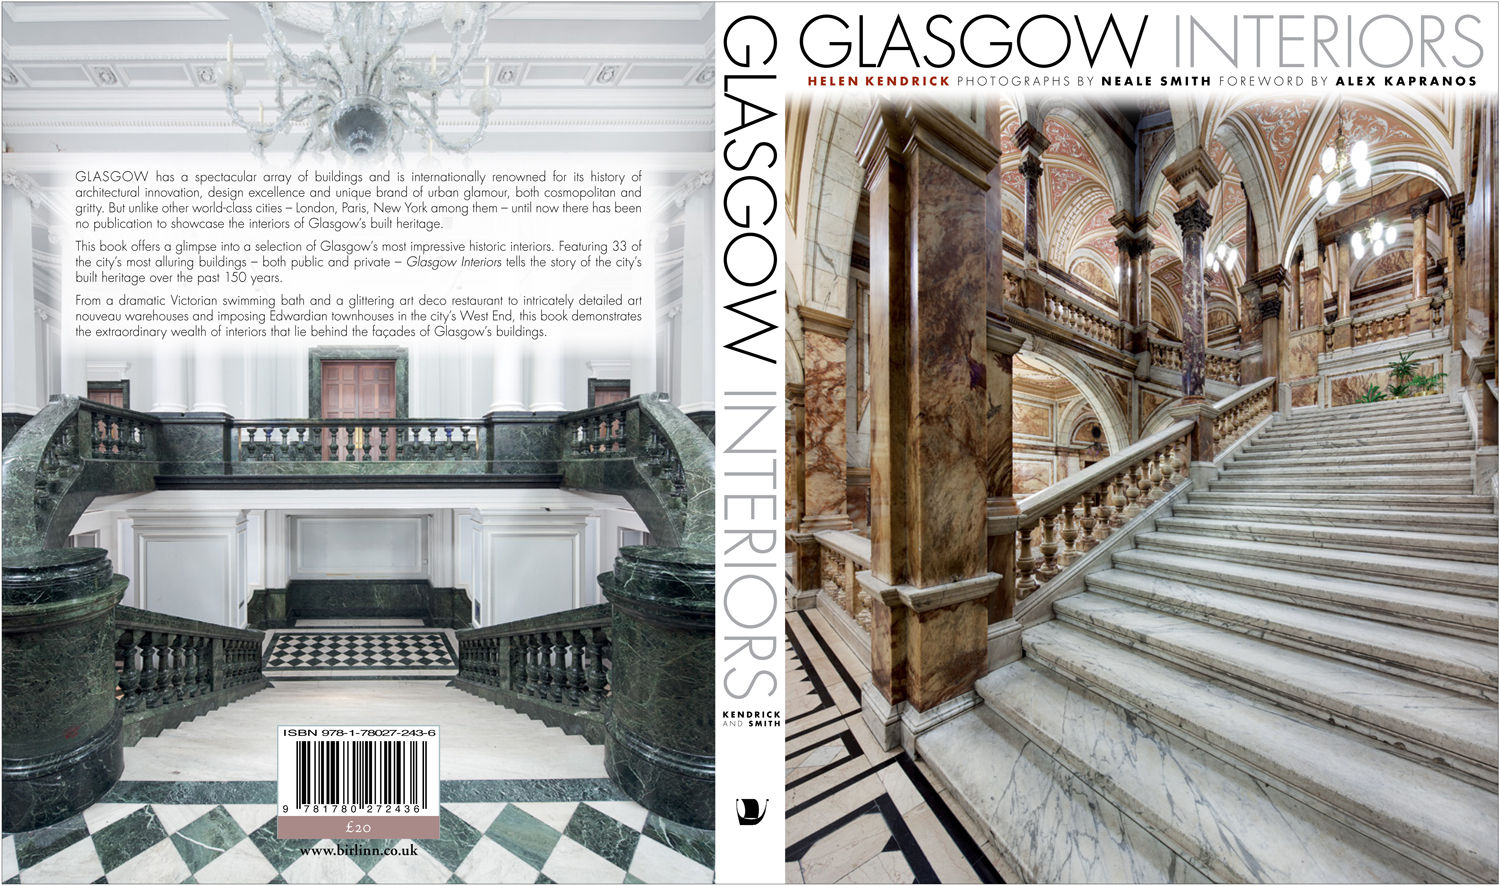 Glasgow_Interiors_cover_small.jpg